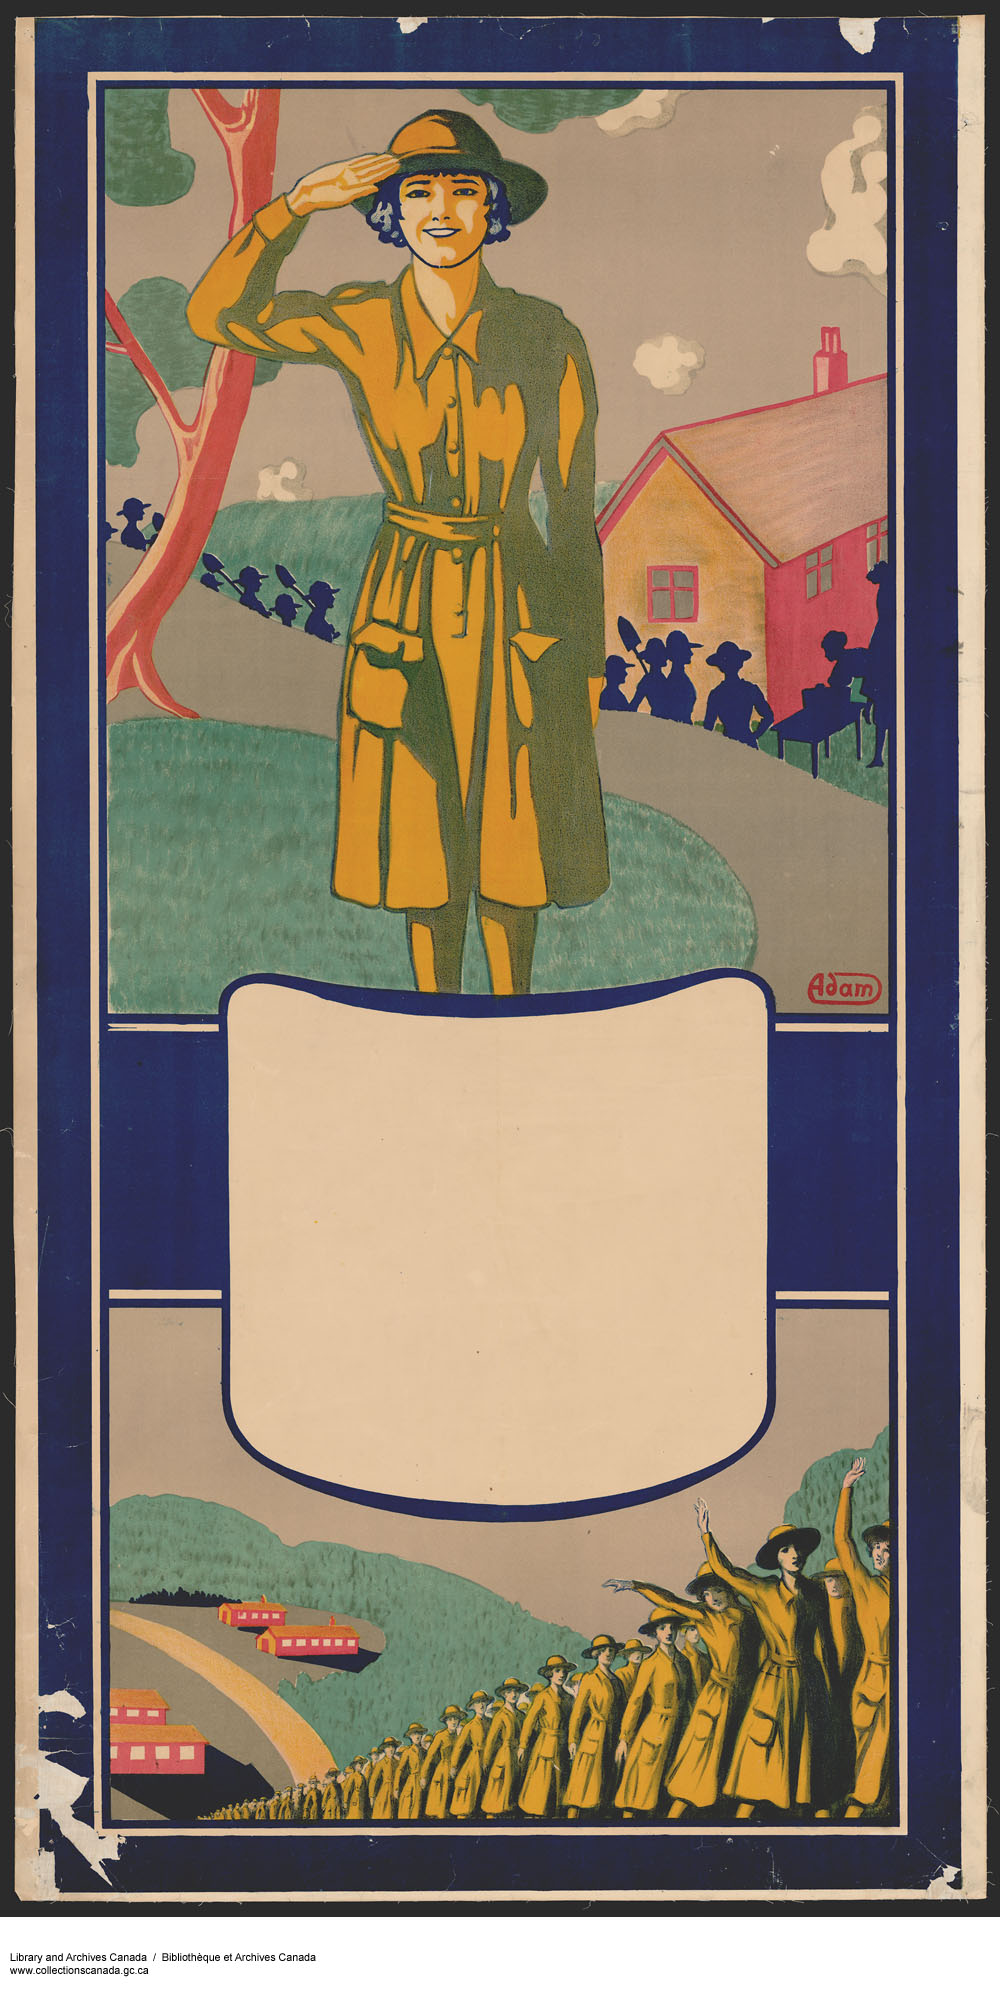 WWI recruitment poster for women